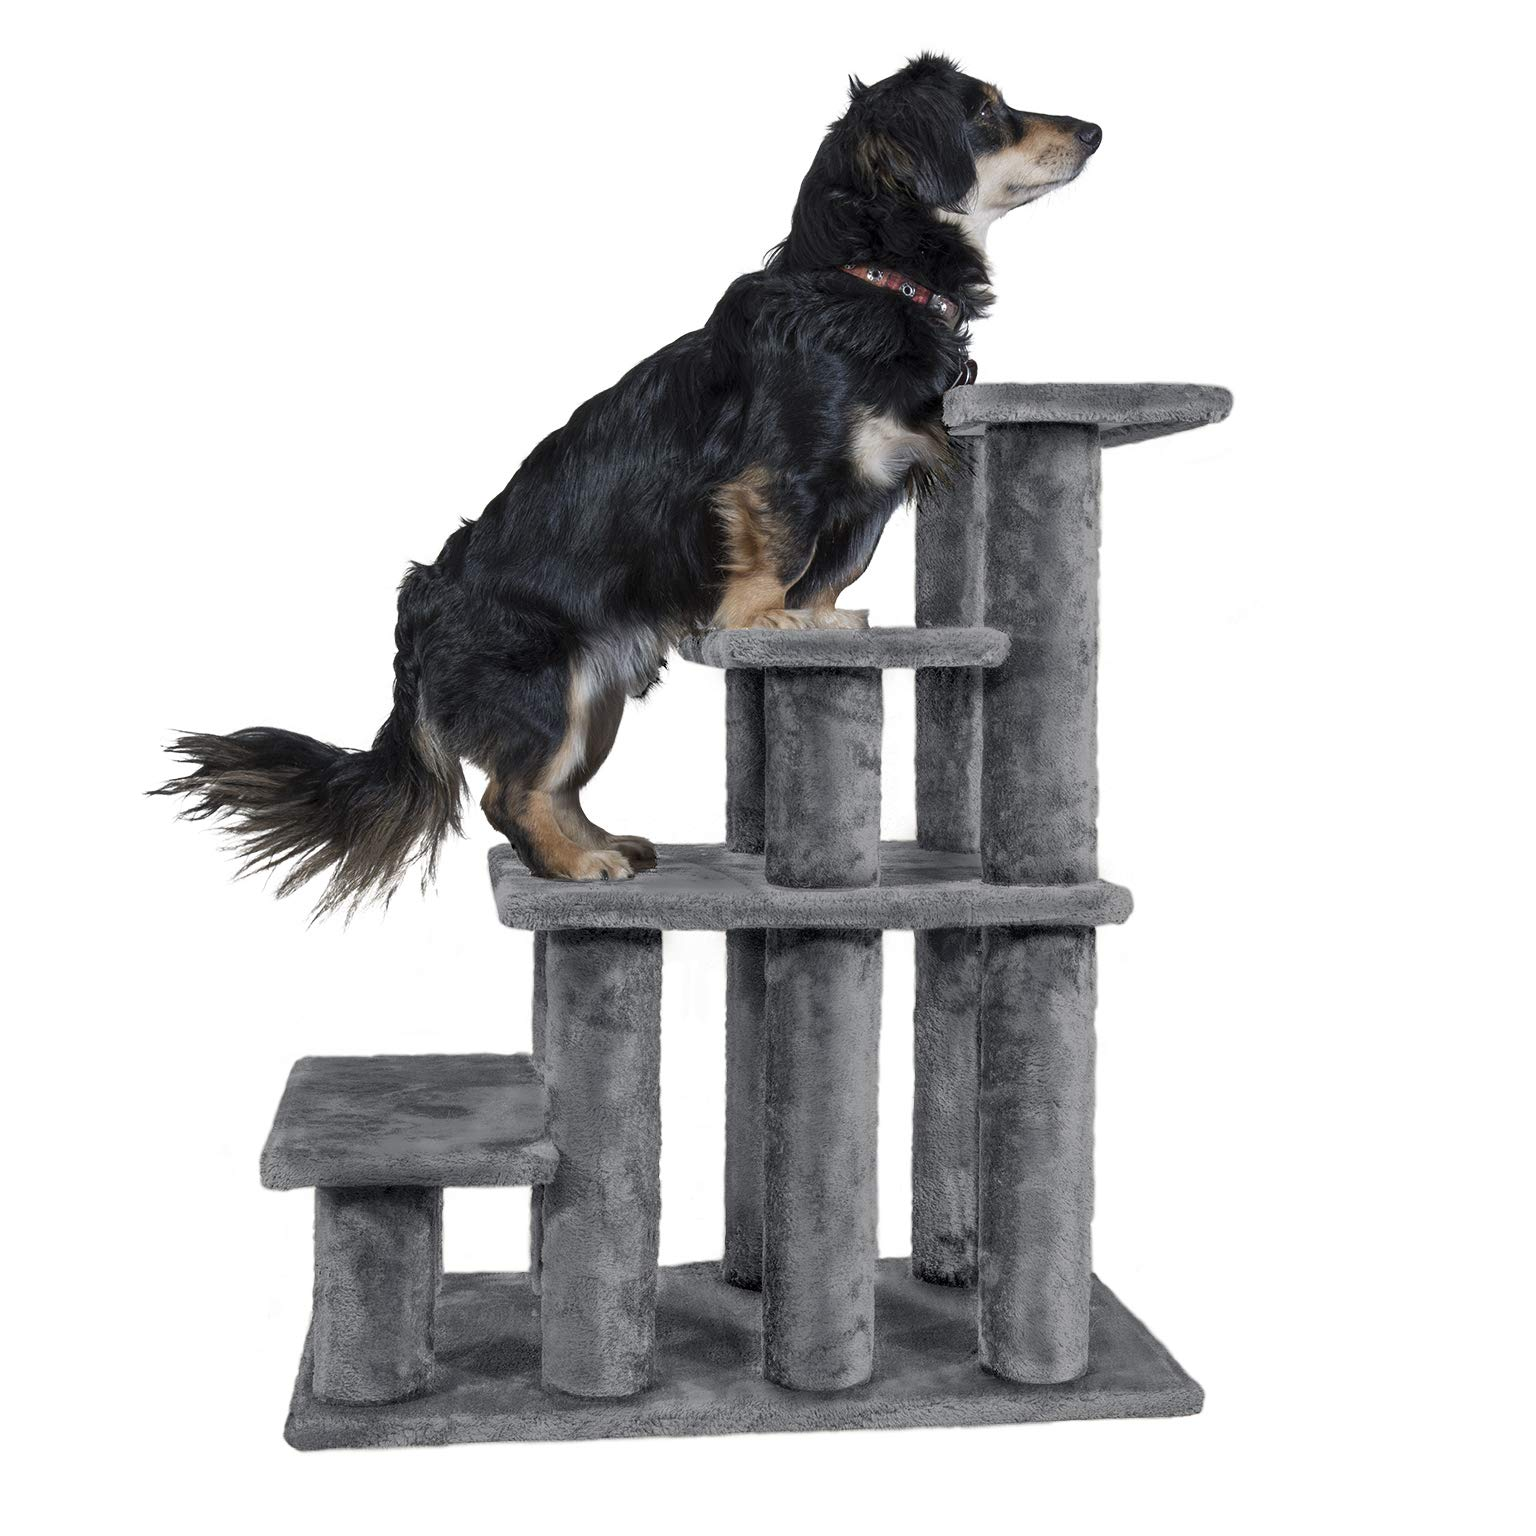 Furhaven Pet Stairs   Steady Paws Easy Multi-Step Pet Stairs Assist Ramp for Dogs & Cats, Gray, 4-Step by Furhaven